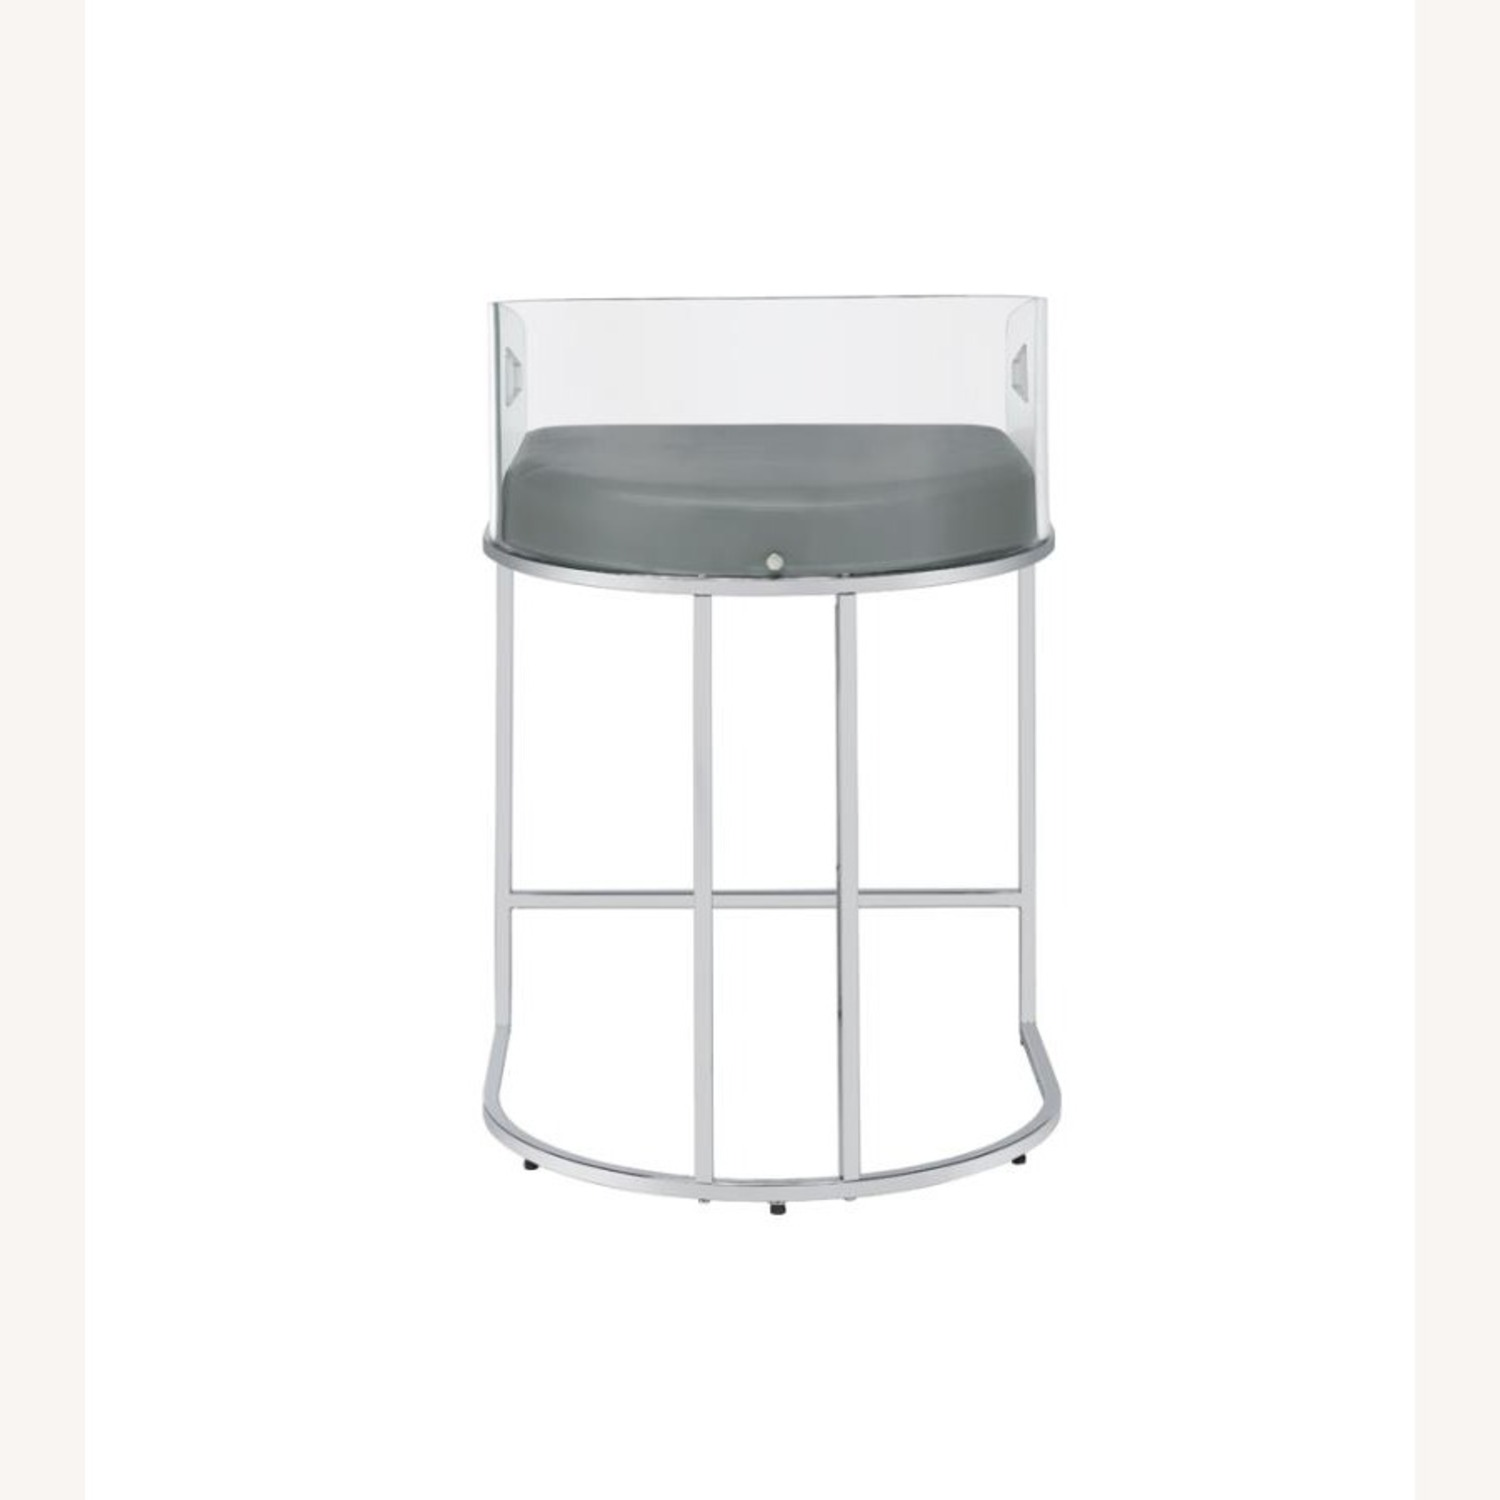 Stool In Grey Leather W/ Clear Acrylic Back - image-3